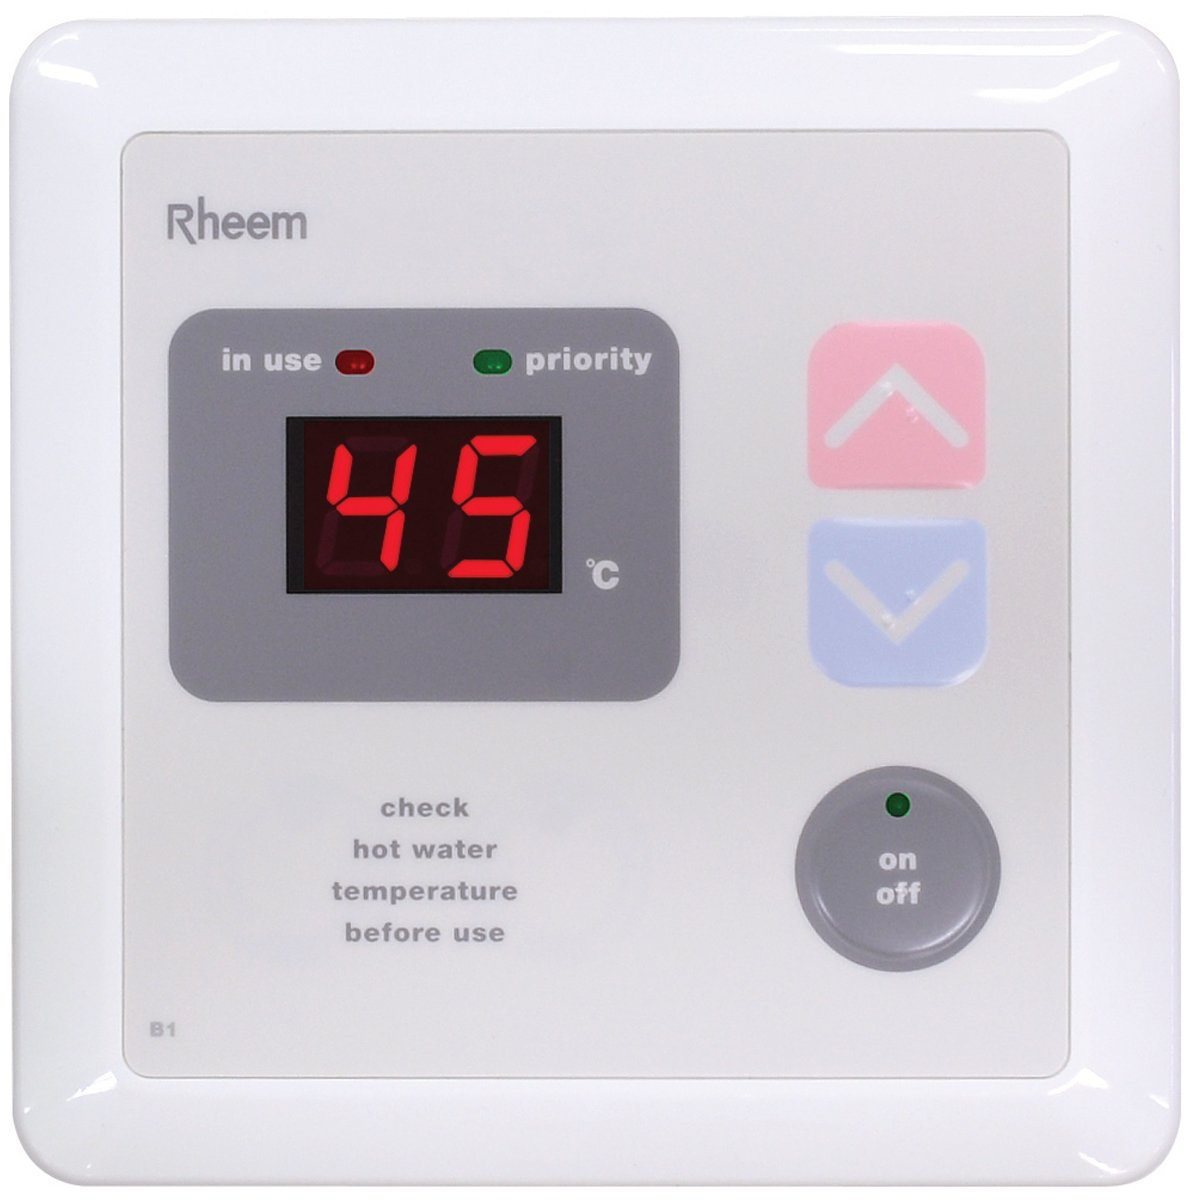 Rheem 299851 Bathroom Continuous Controller | Appliances Online